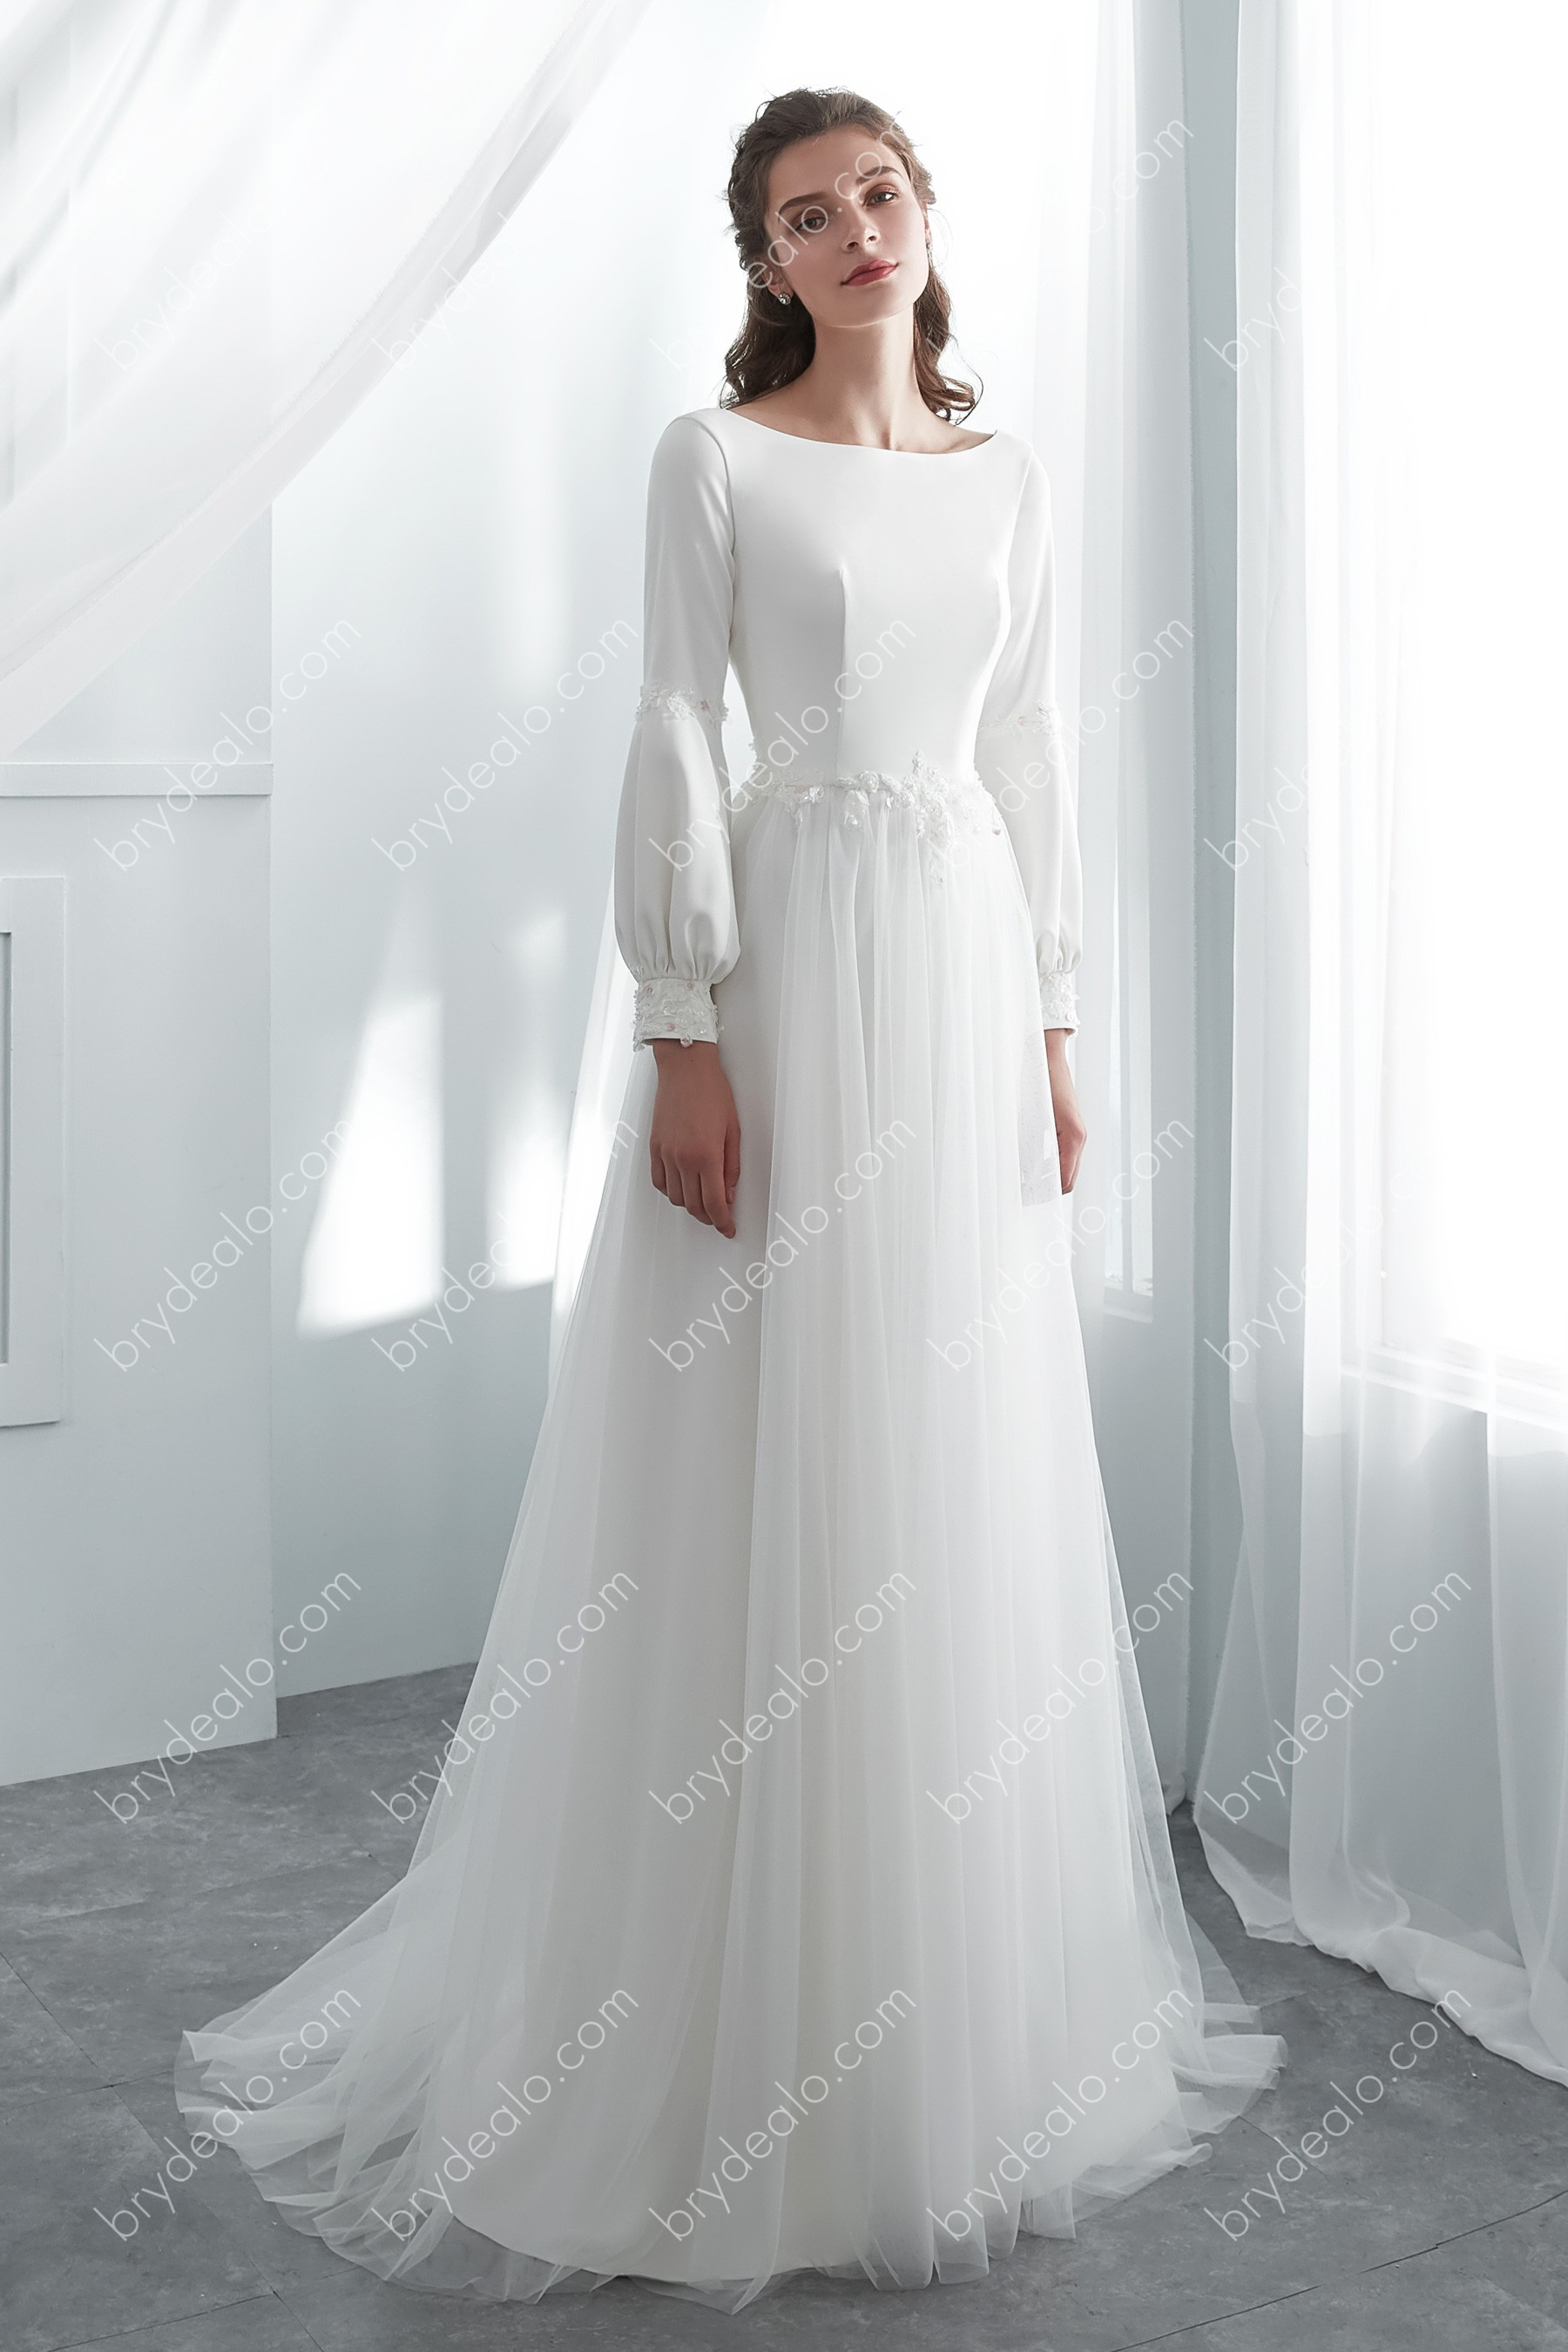 Simple Boho Wedding Dress With Bubble Sleeves